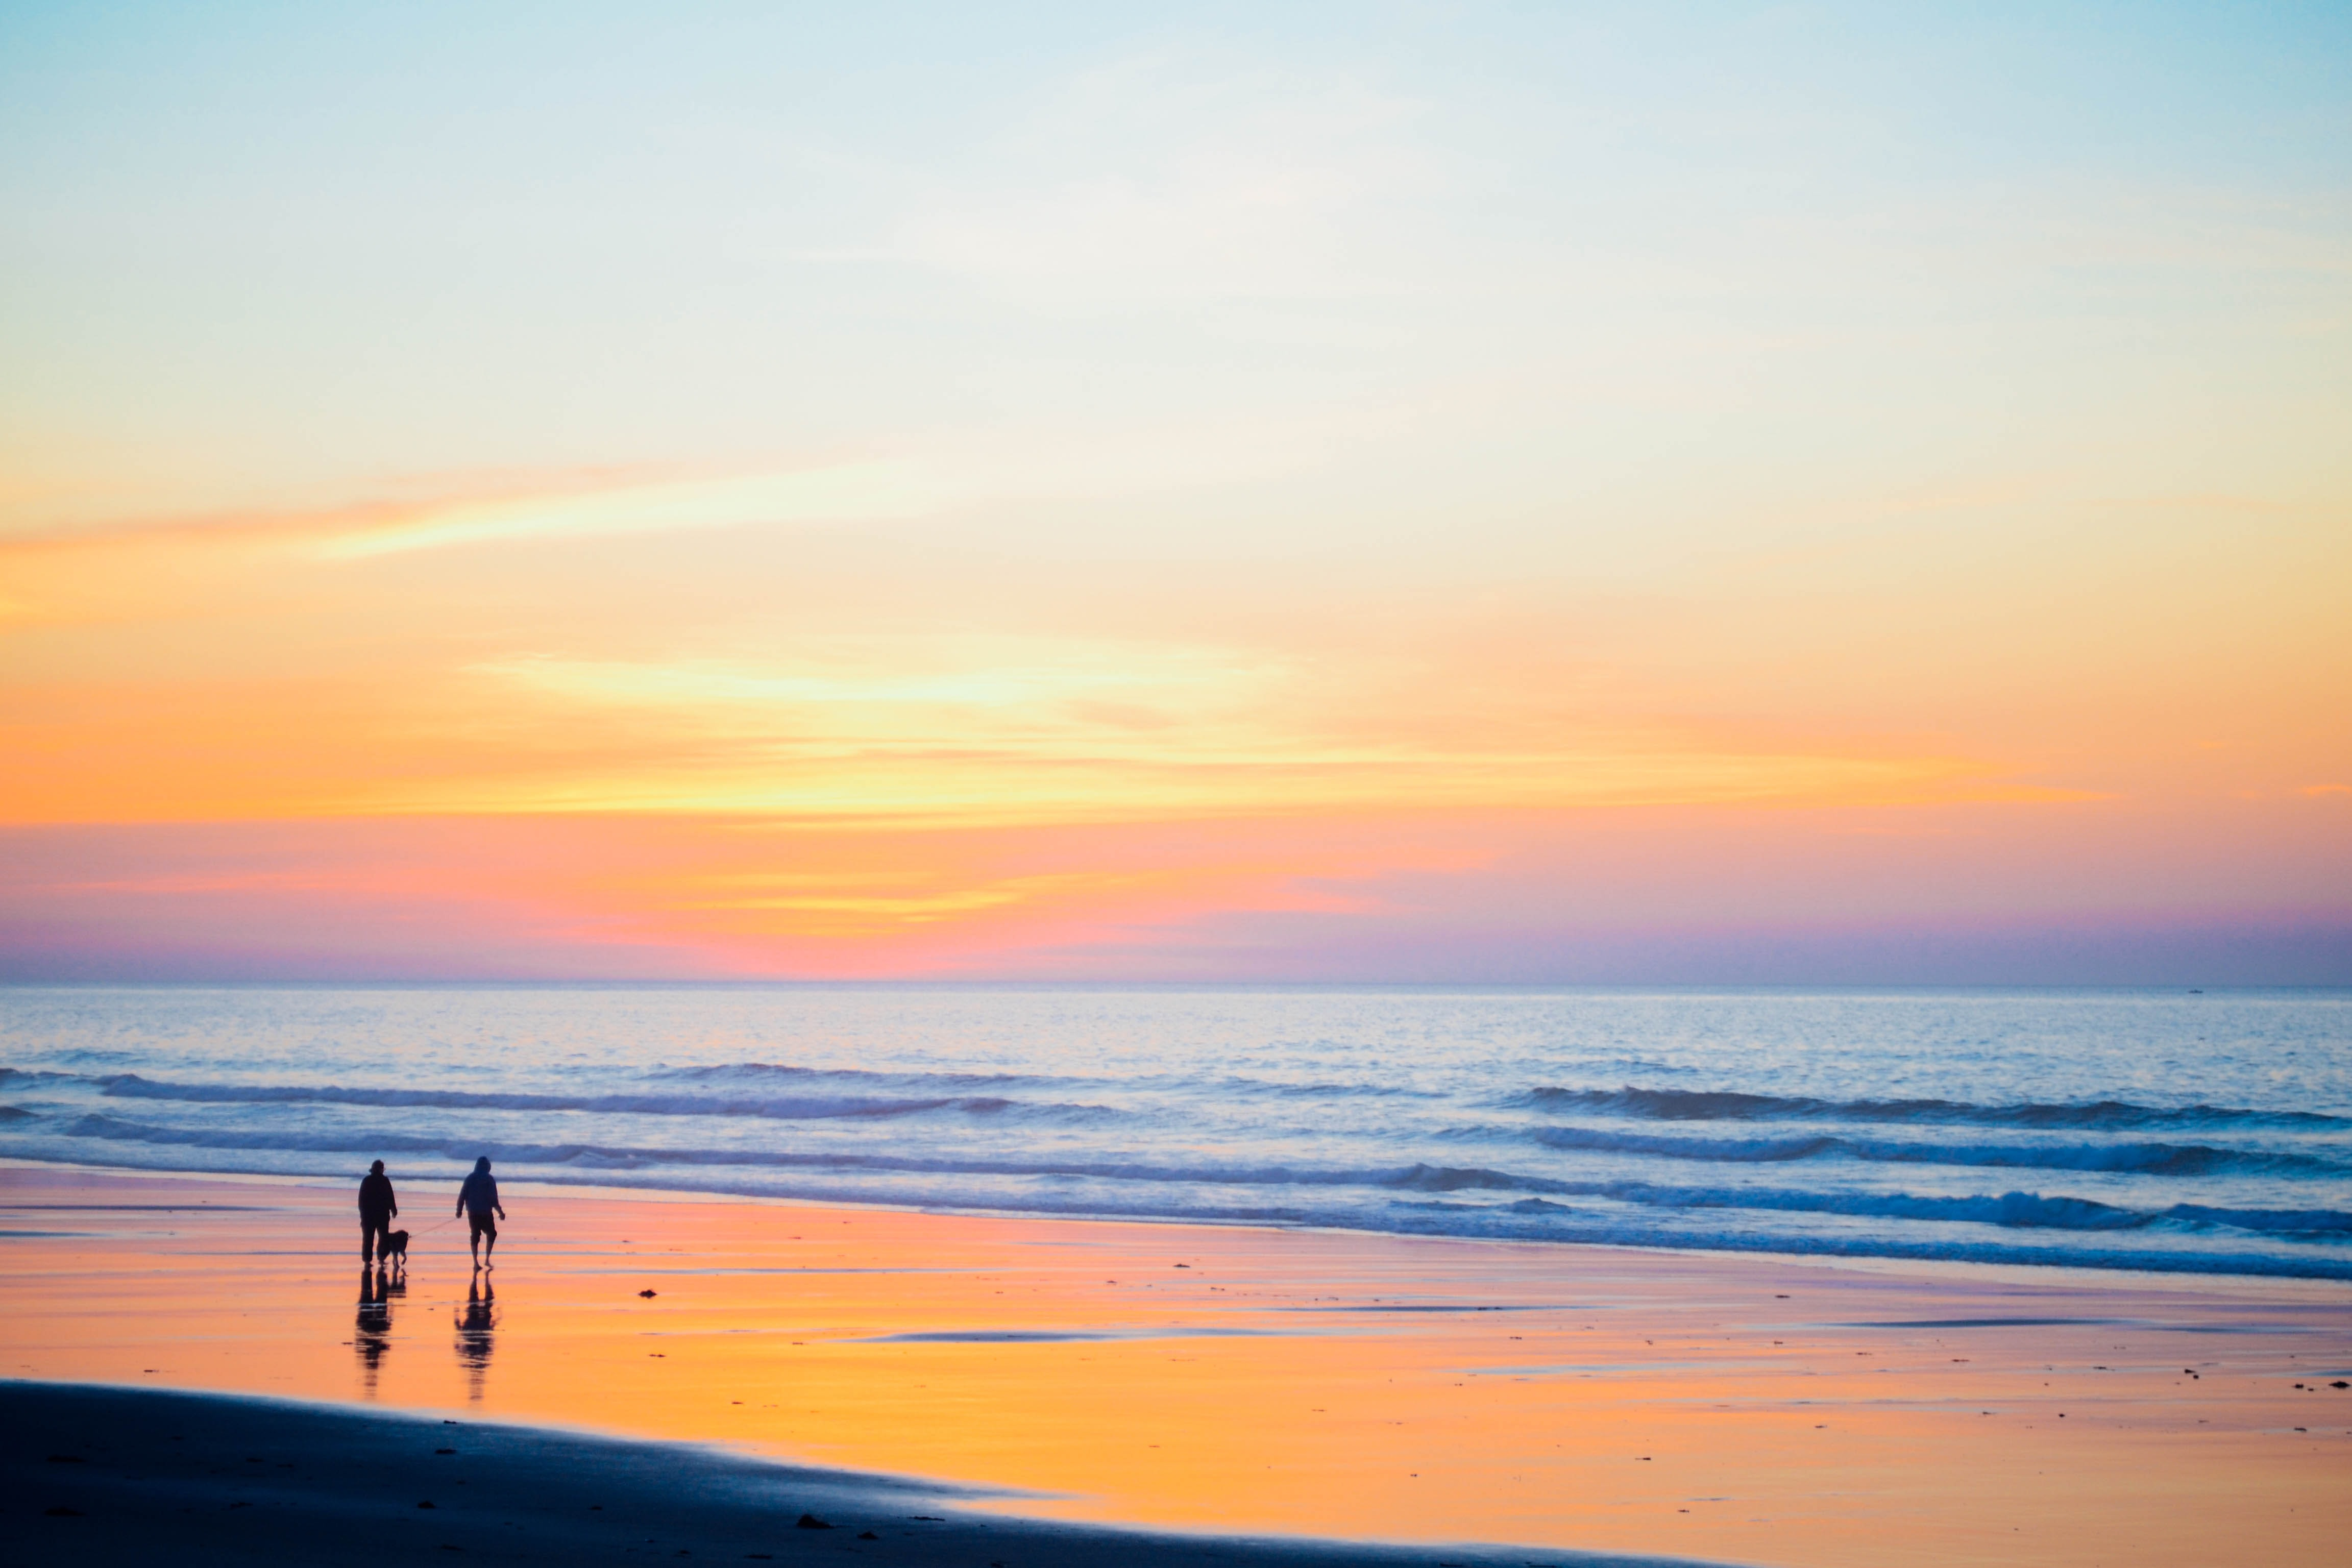 A family by the Moody Beach ocean watching the orange and blue sunset